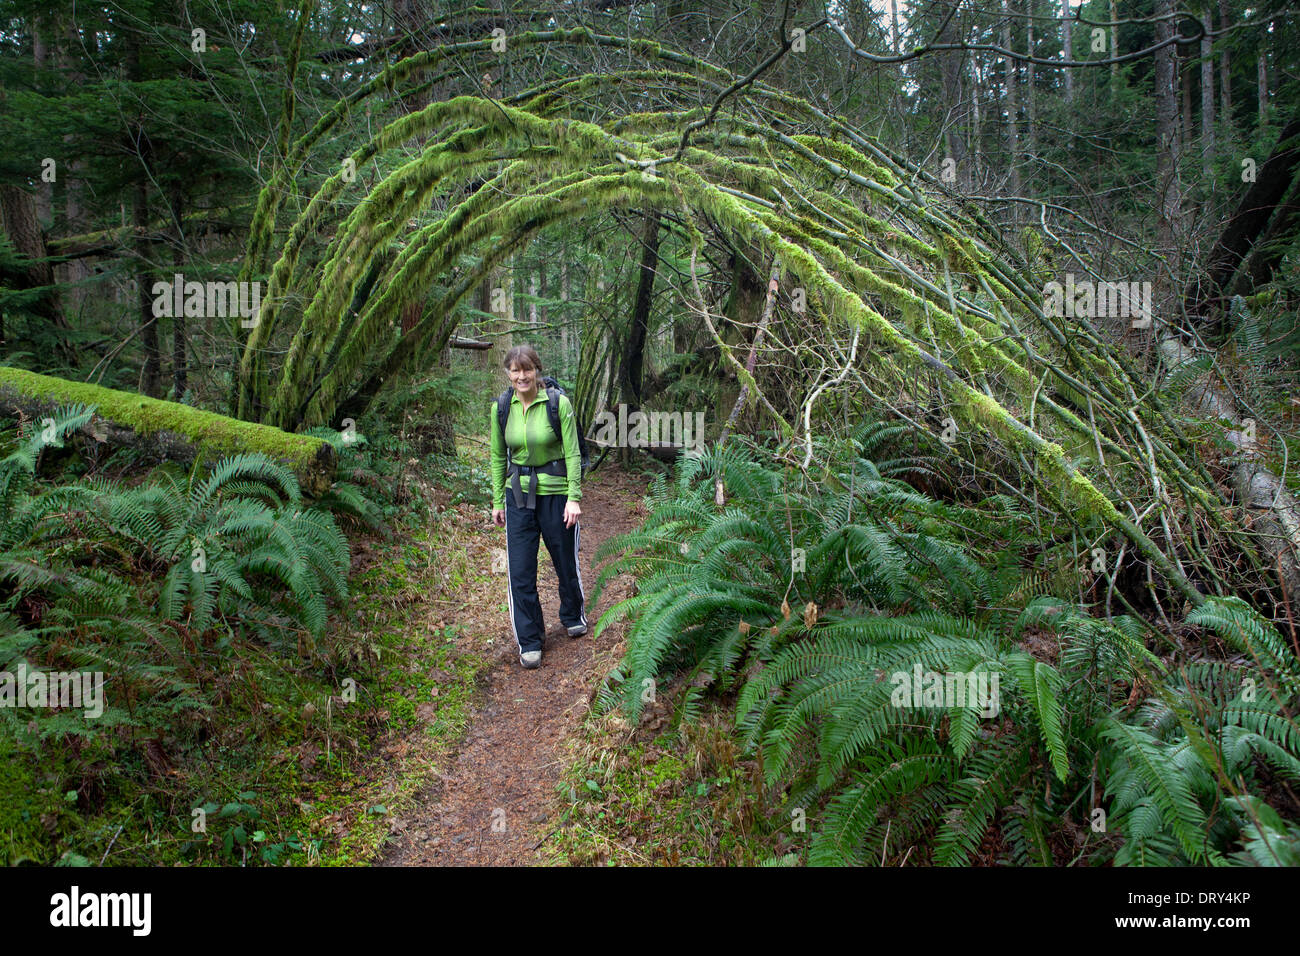 WASHINGTON - Hiker on One View Trail, part of Tiger Mountain Trail System in the Issaquah Alps, Cascade Mountains foothills. - Stock Image